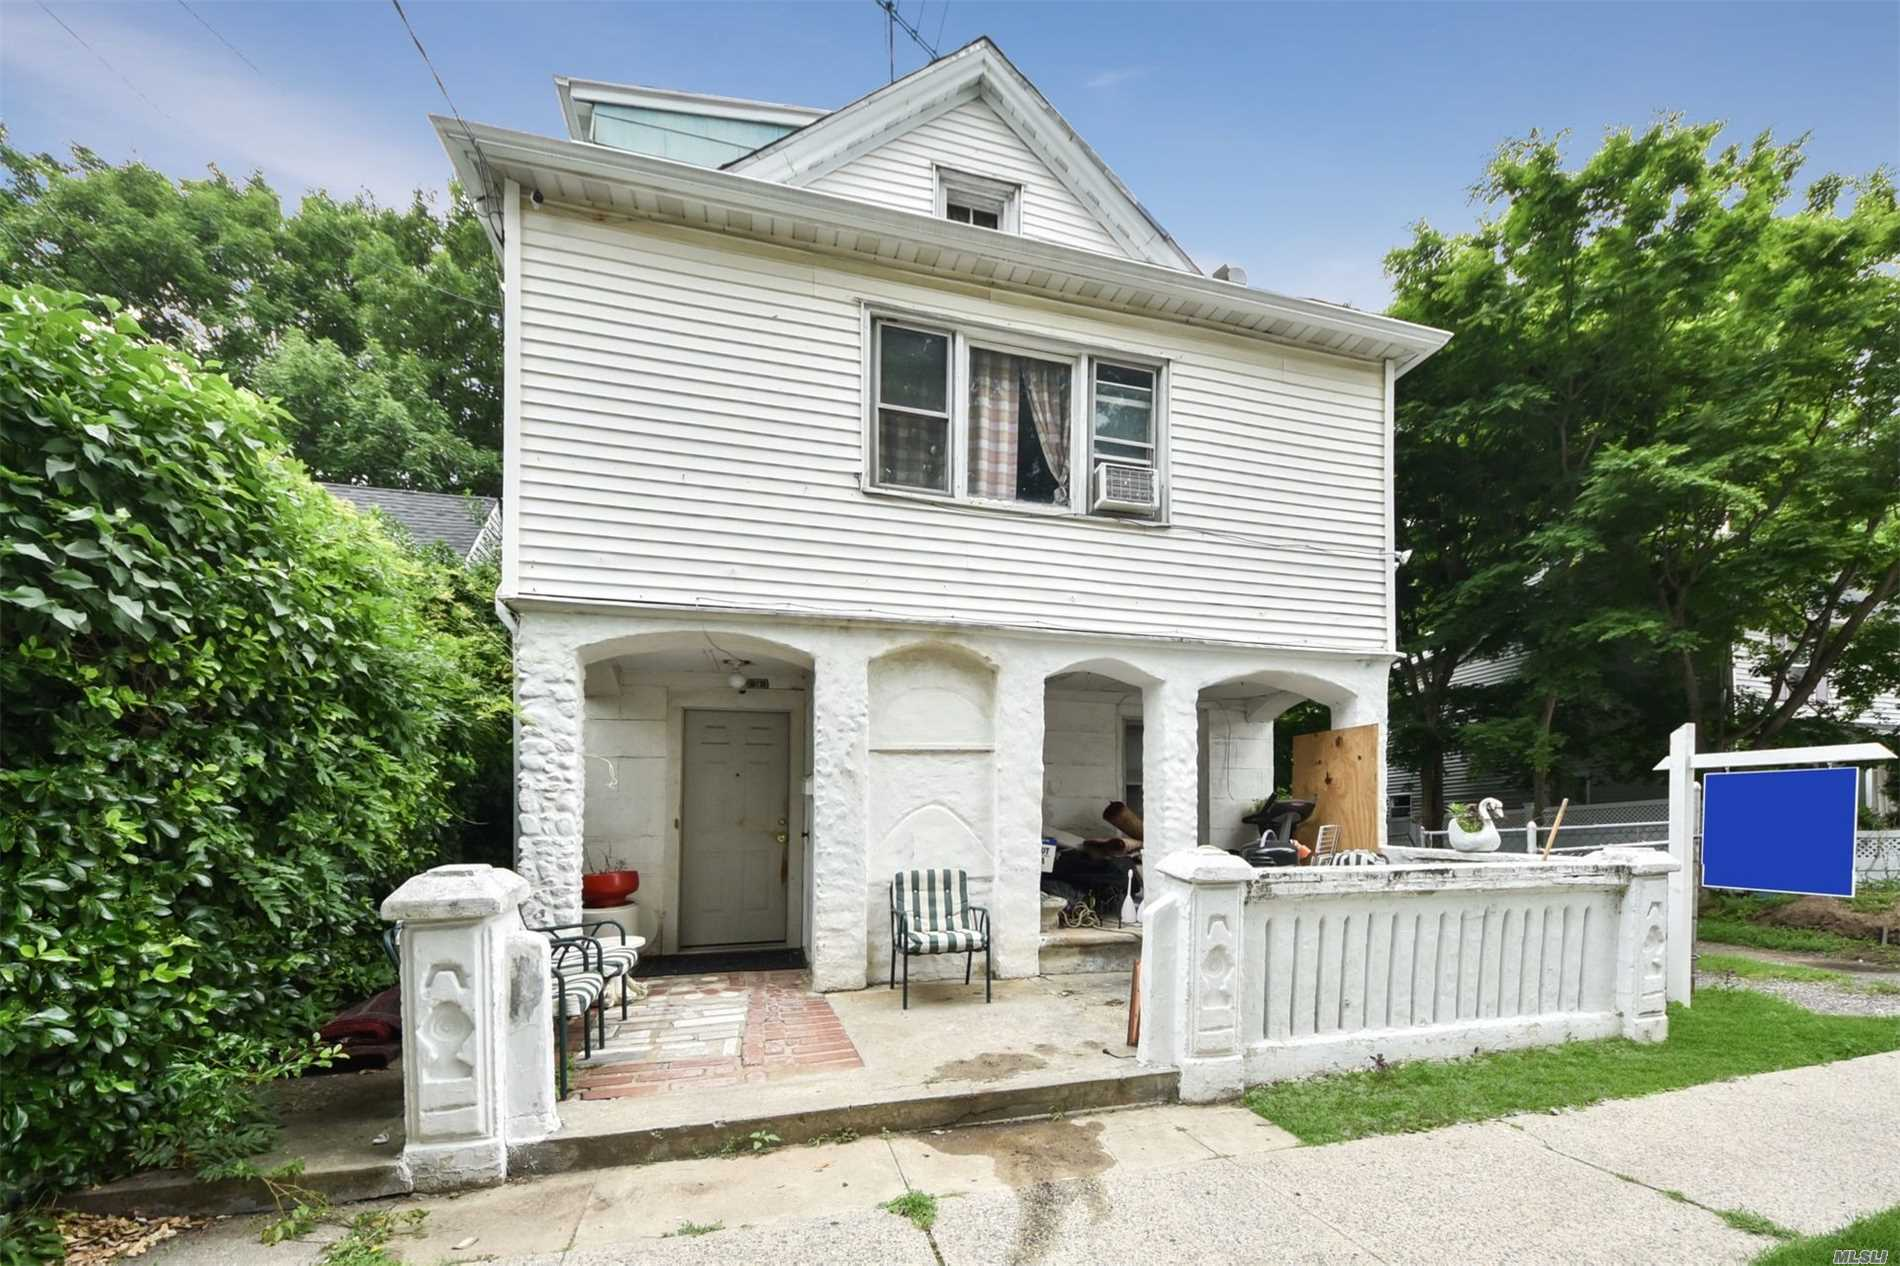 Desirable Colonial On Quiet Street With 4 Bedrooms, Space For Office, Hardwood Floors, Spacious Attic,  Gas Cooking, Close To Public Transportation And Shopping. Unique Opportunity To Live In Port Washington Schools.  Do Not Miss This Opportunity!! This Will Not Last. Home Being Sold As Is. 24 Hour Advanced Notice. By Appointment Only. Taxes Have Not Been Grieved. Price Reduced!!